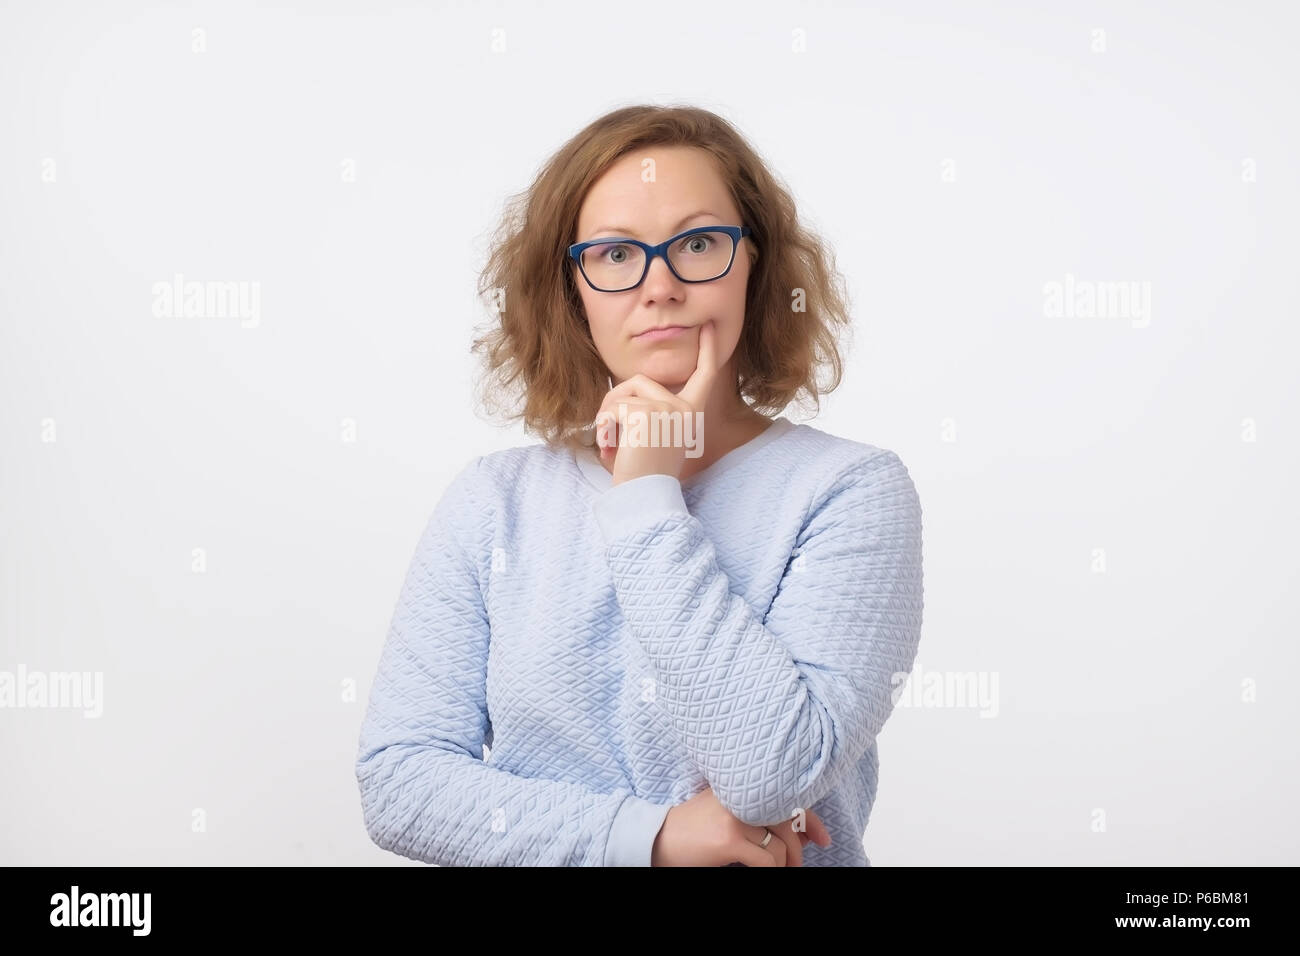 European looking woman